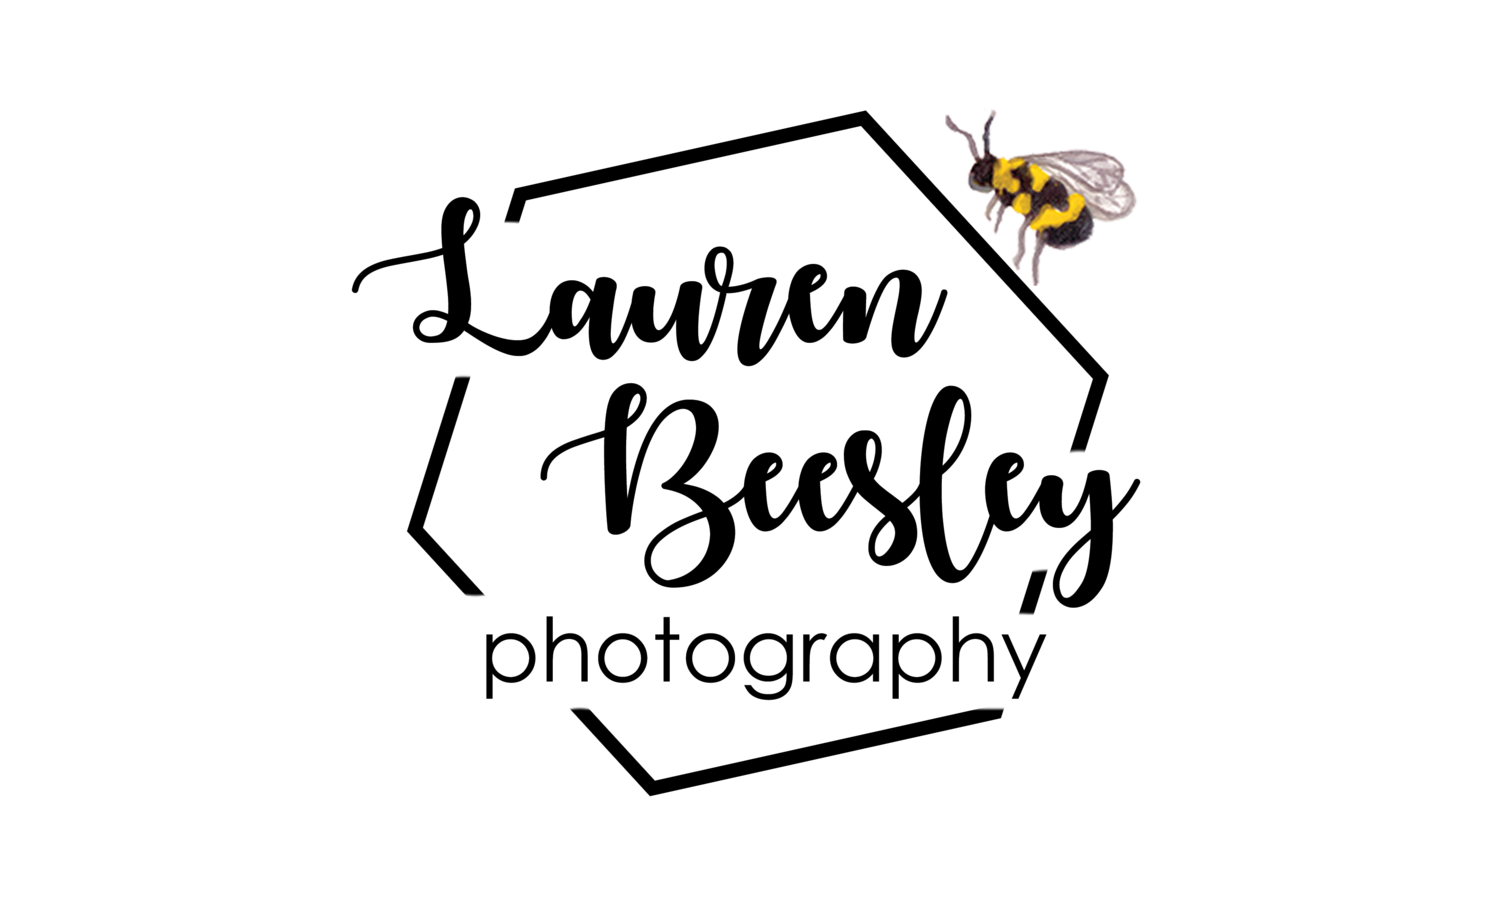 Lauren Beesley Photography